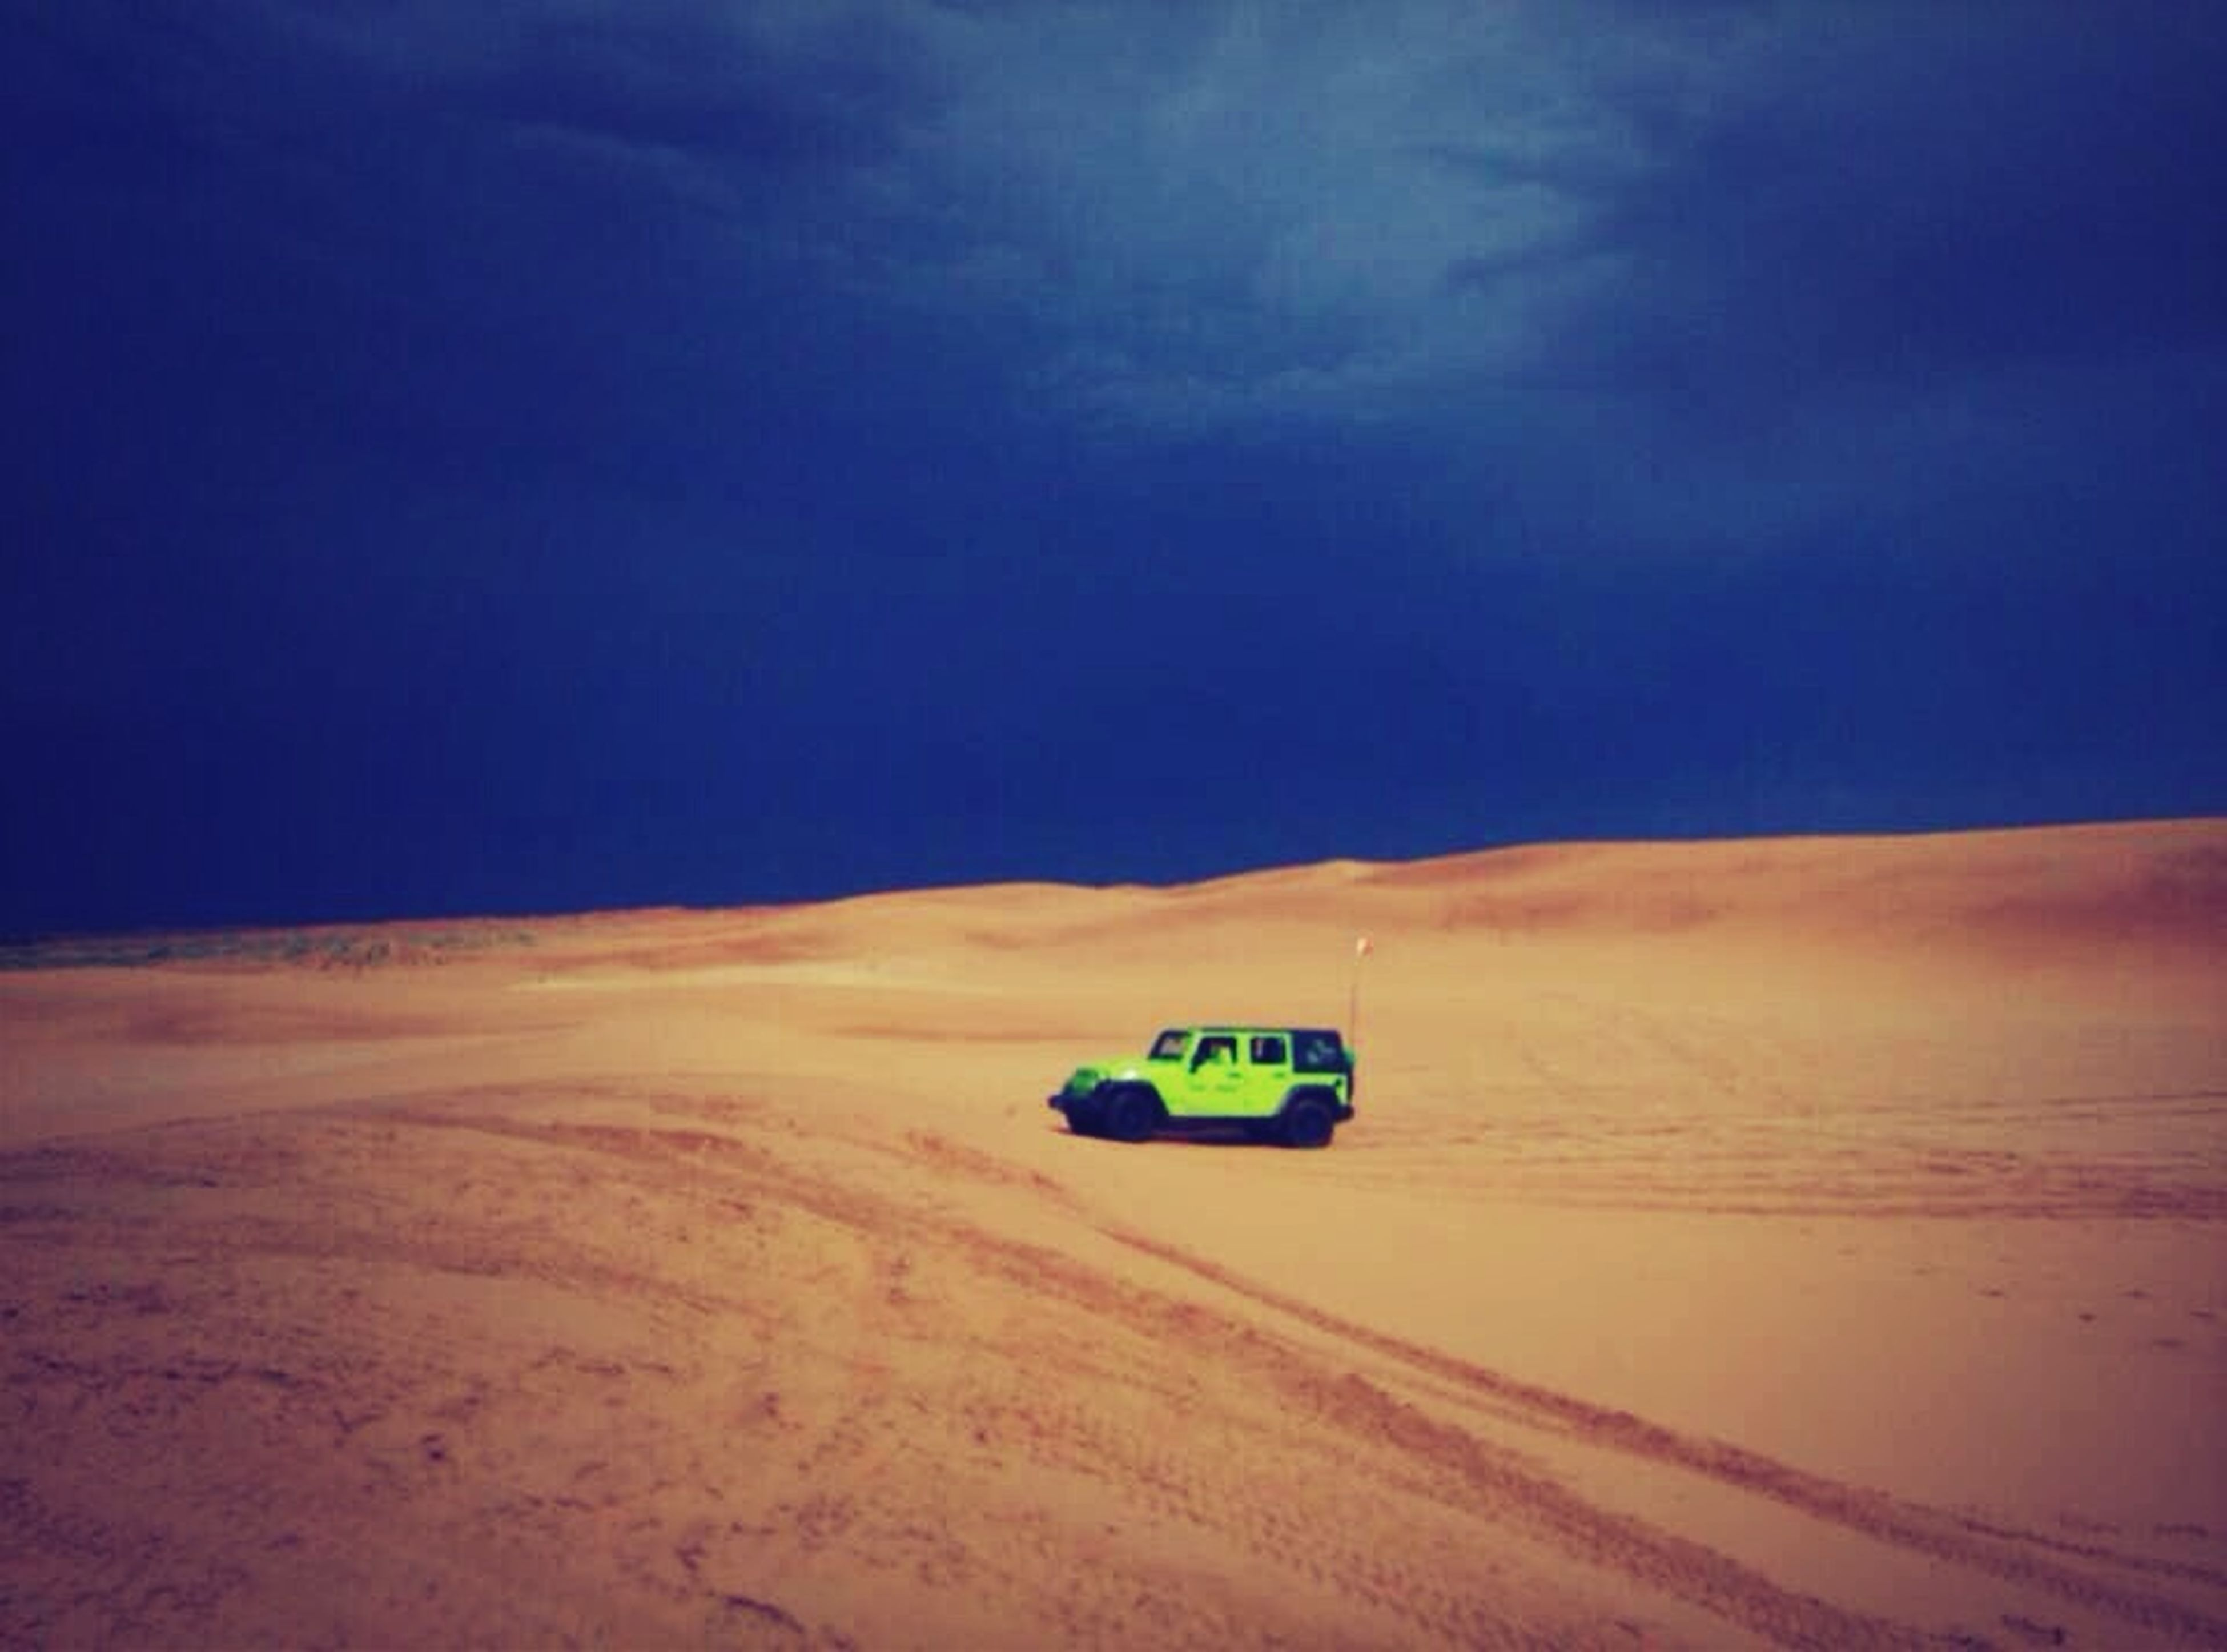 transportation, sand, sky, blue, landscape, tranquility, land vehicle, tranquil scene, desert, nature, scenics, sunlight, outdoors, mode of transport, road, day, beauty in nature, car, no people, non-urban scene